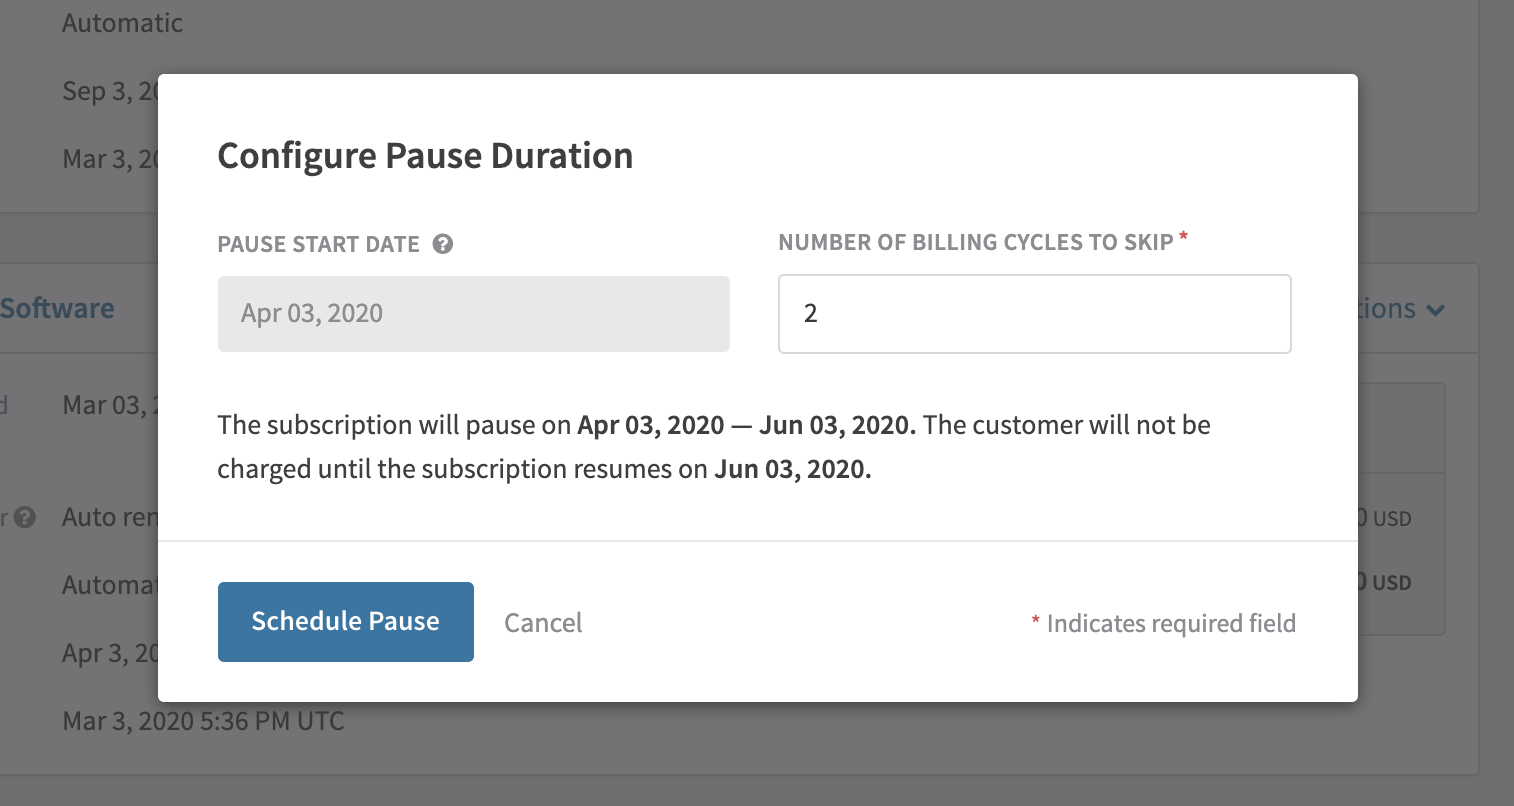 Enter the number of billing cycles you want the subscription to skip and remain paused for.